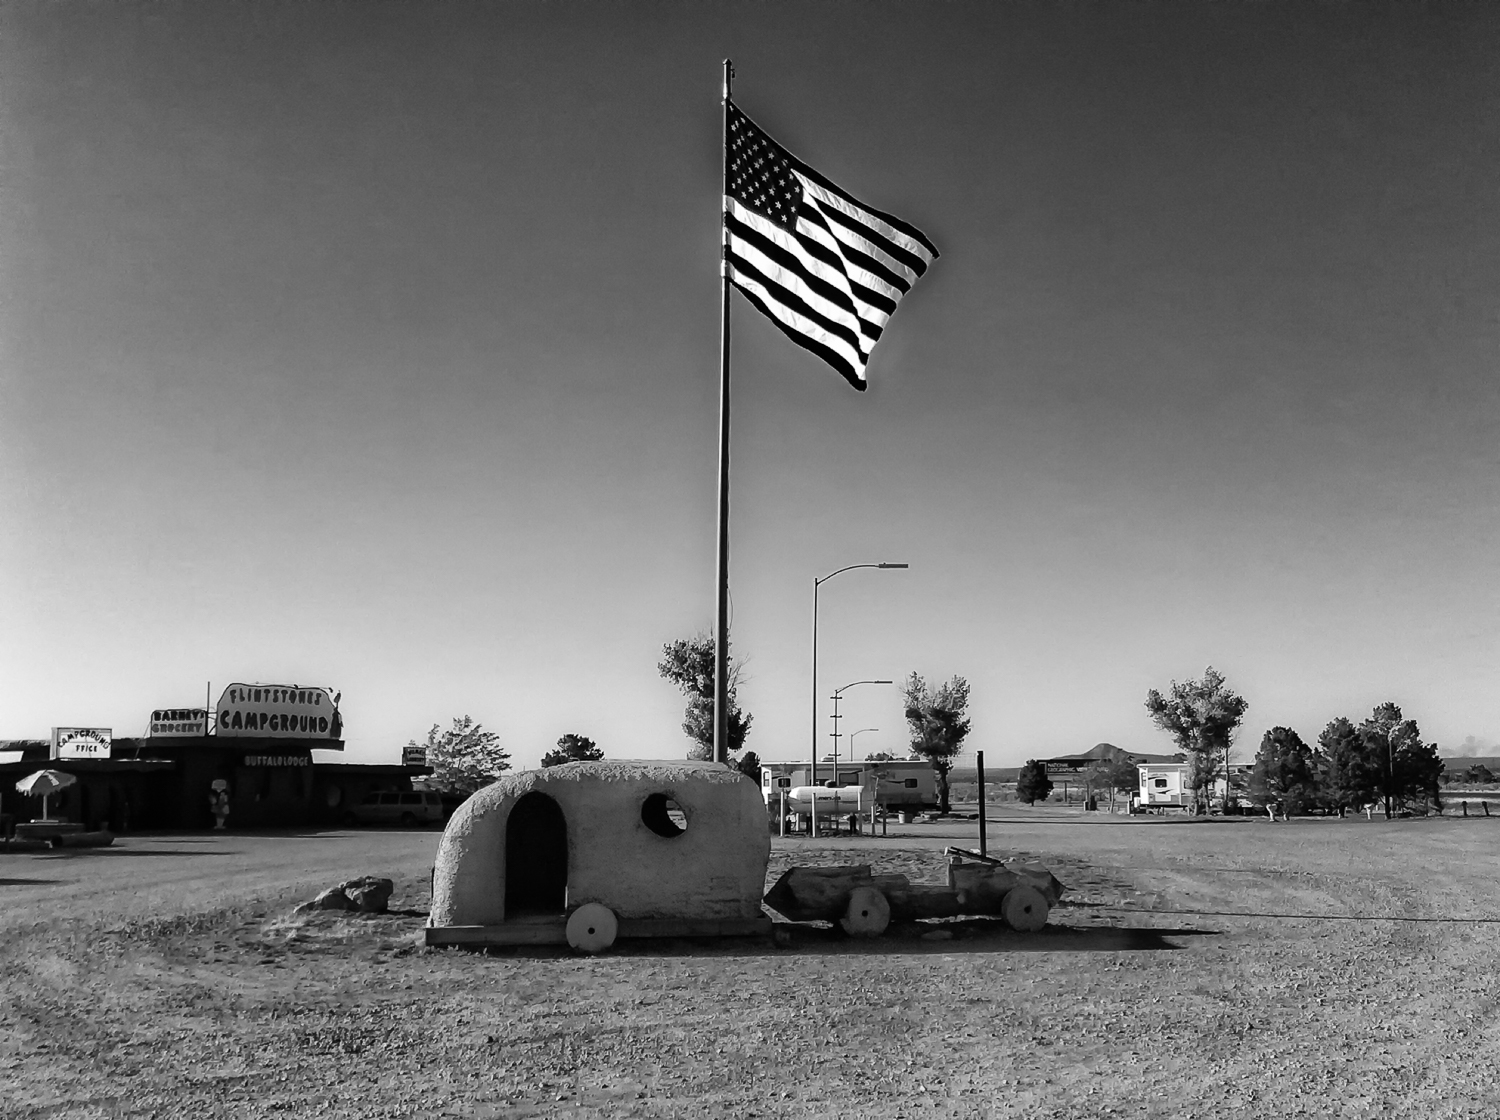 Bedrock City, Arizona, 2012